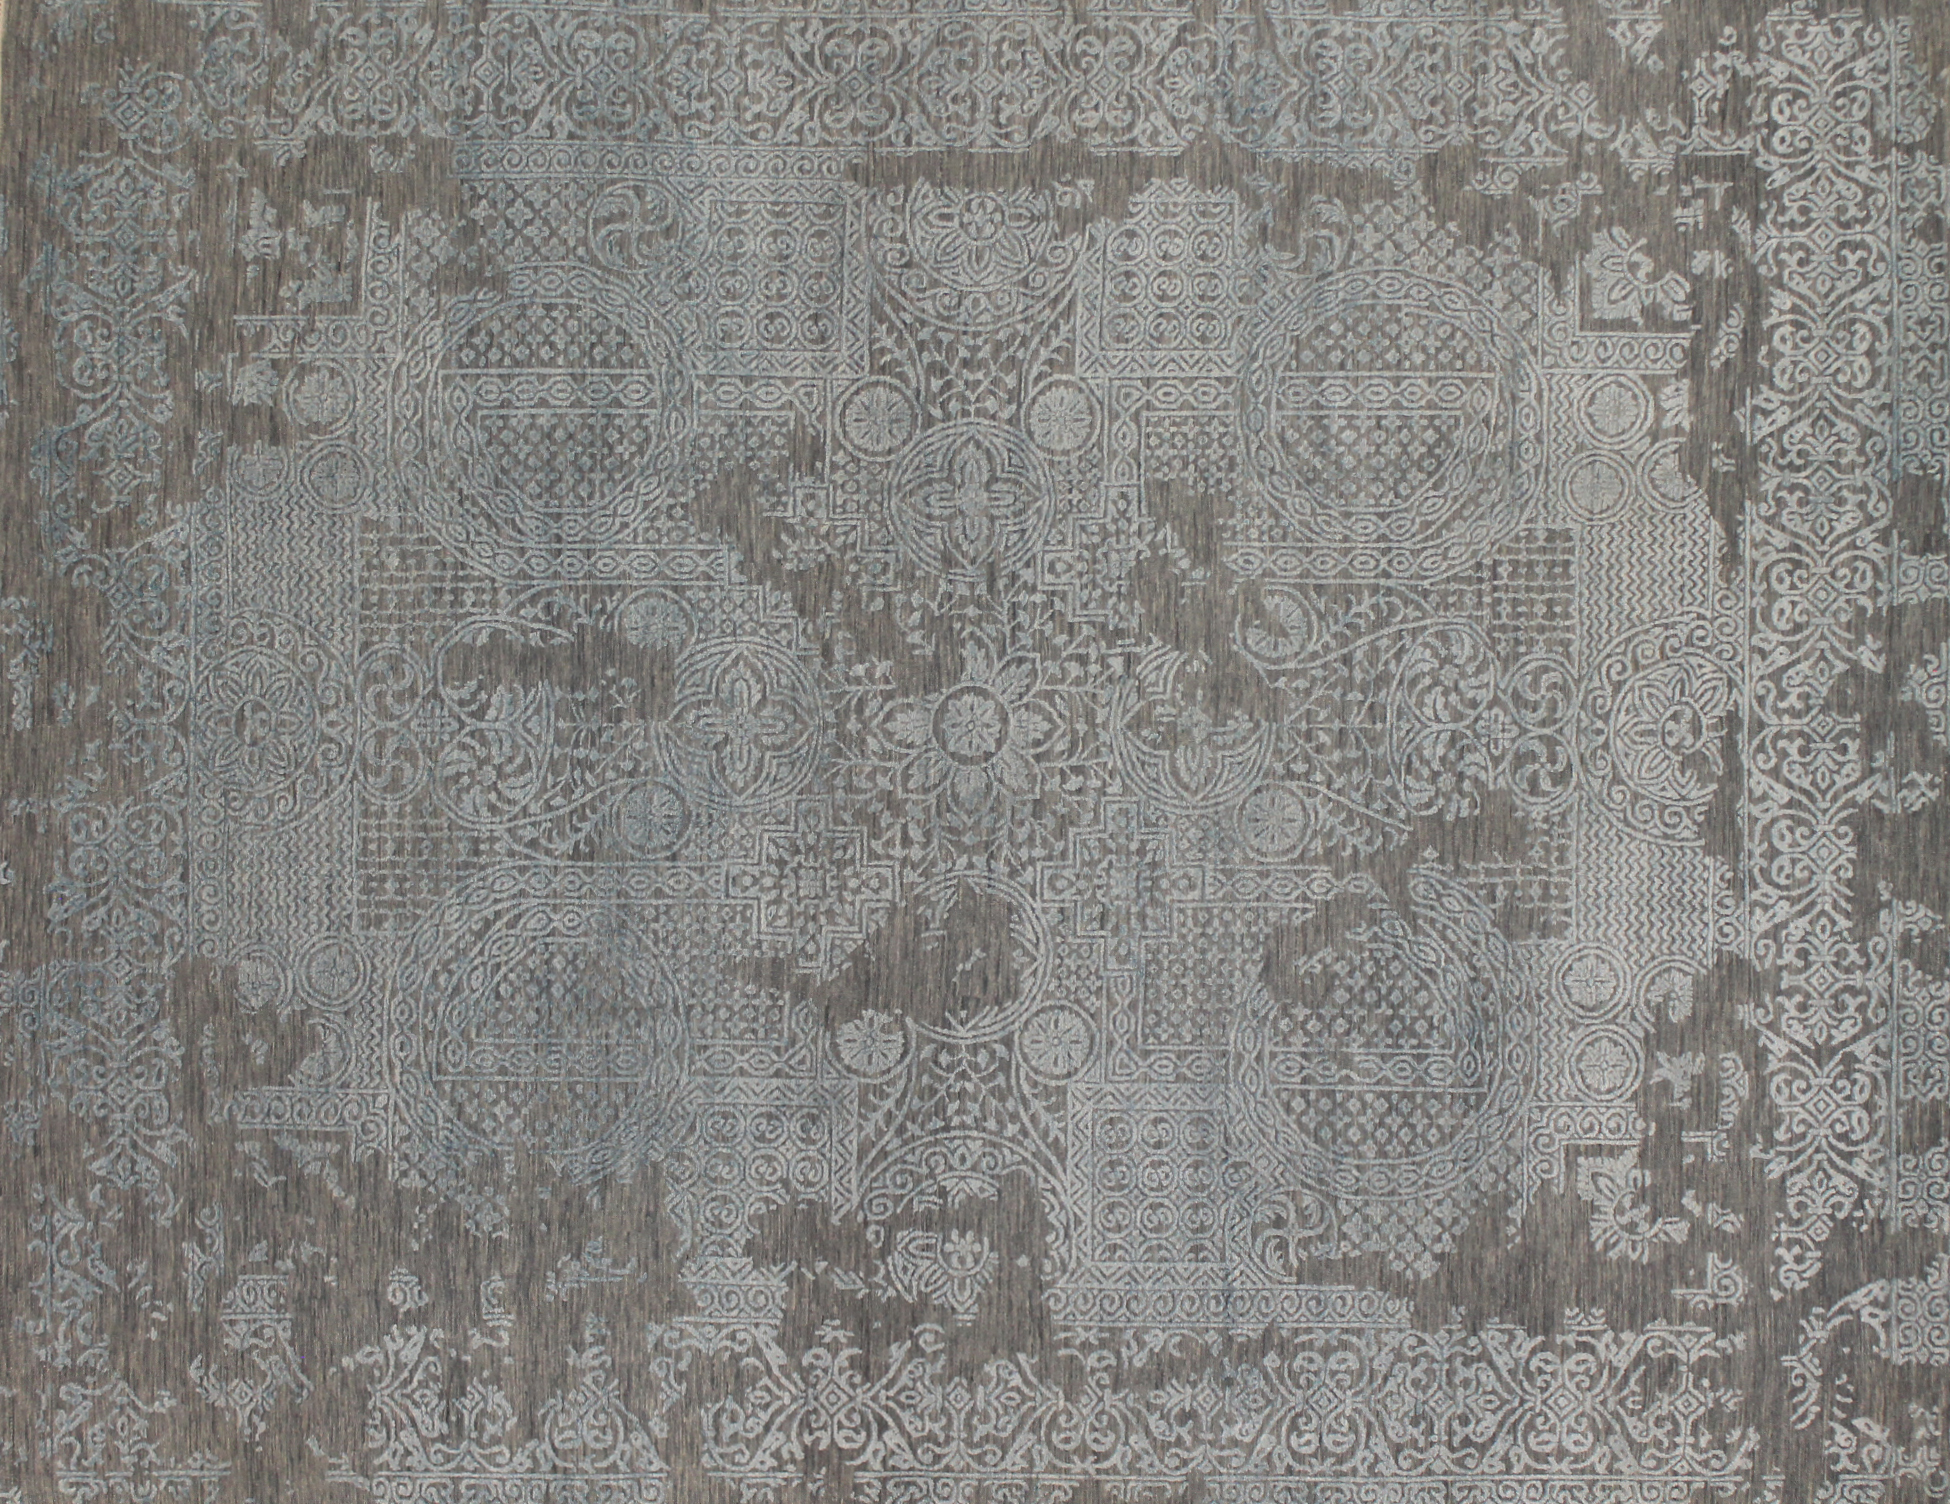 8x10  Hand Knotted Wool Area Rug - MR022834